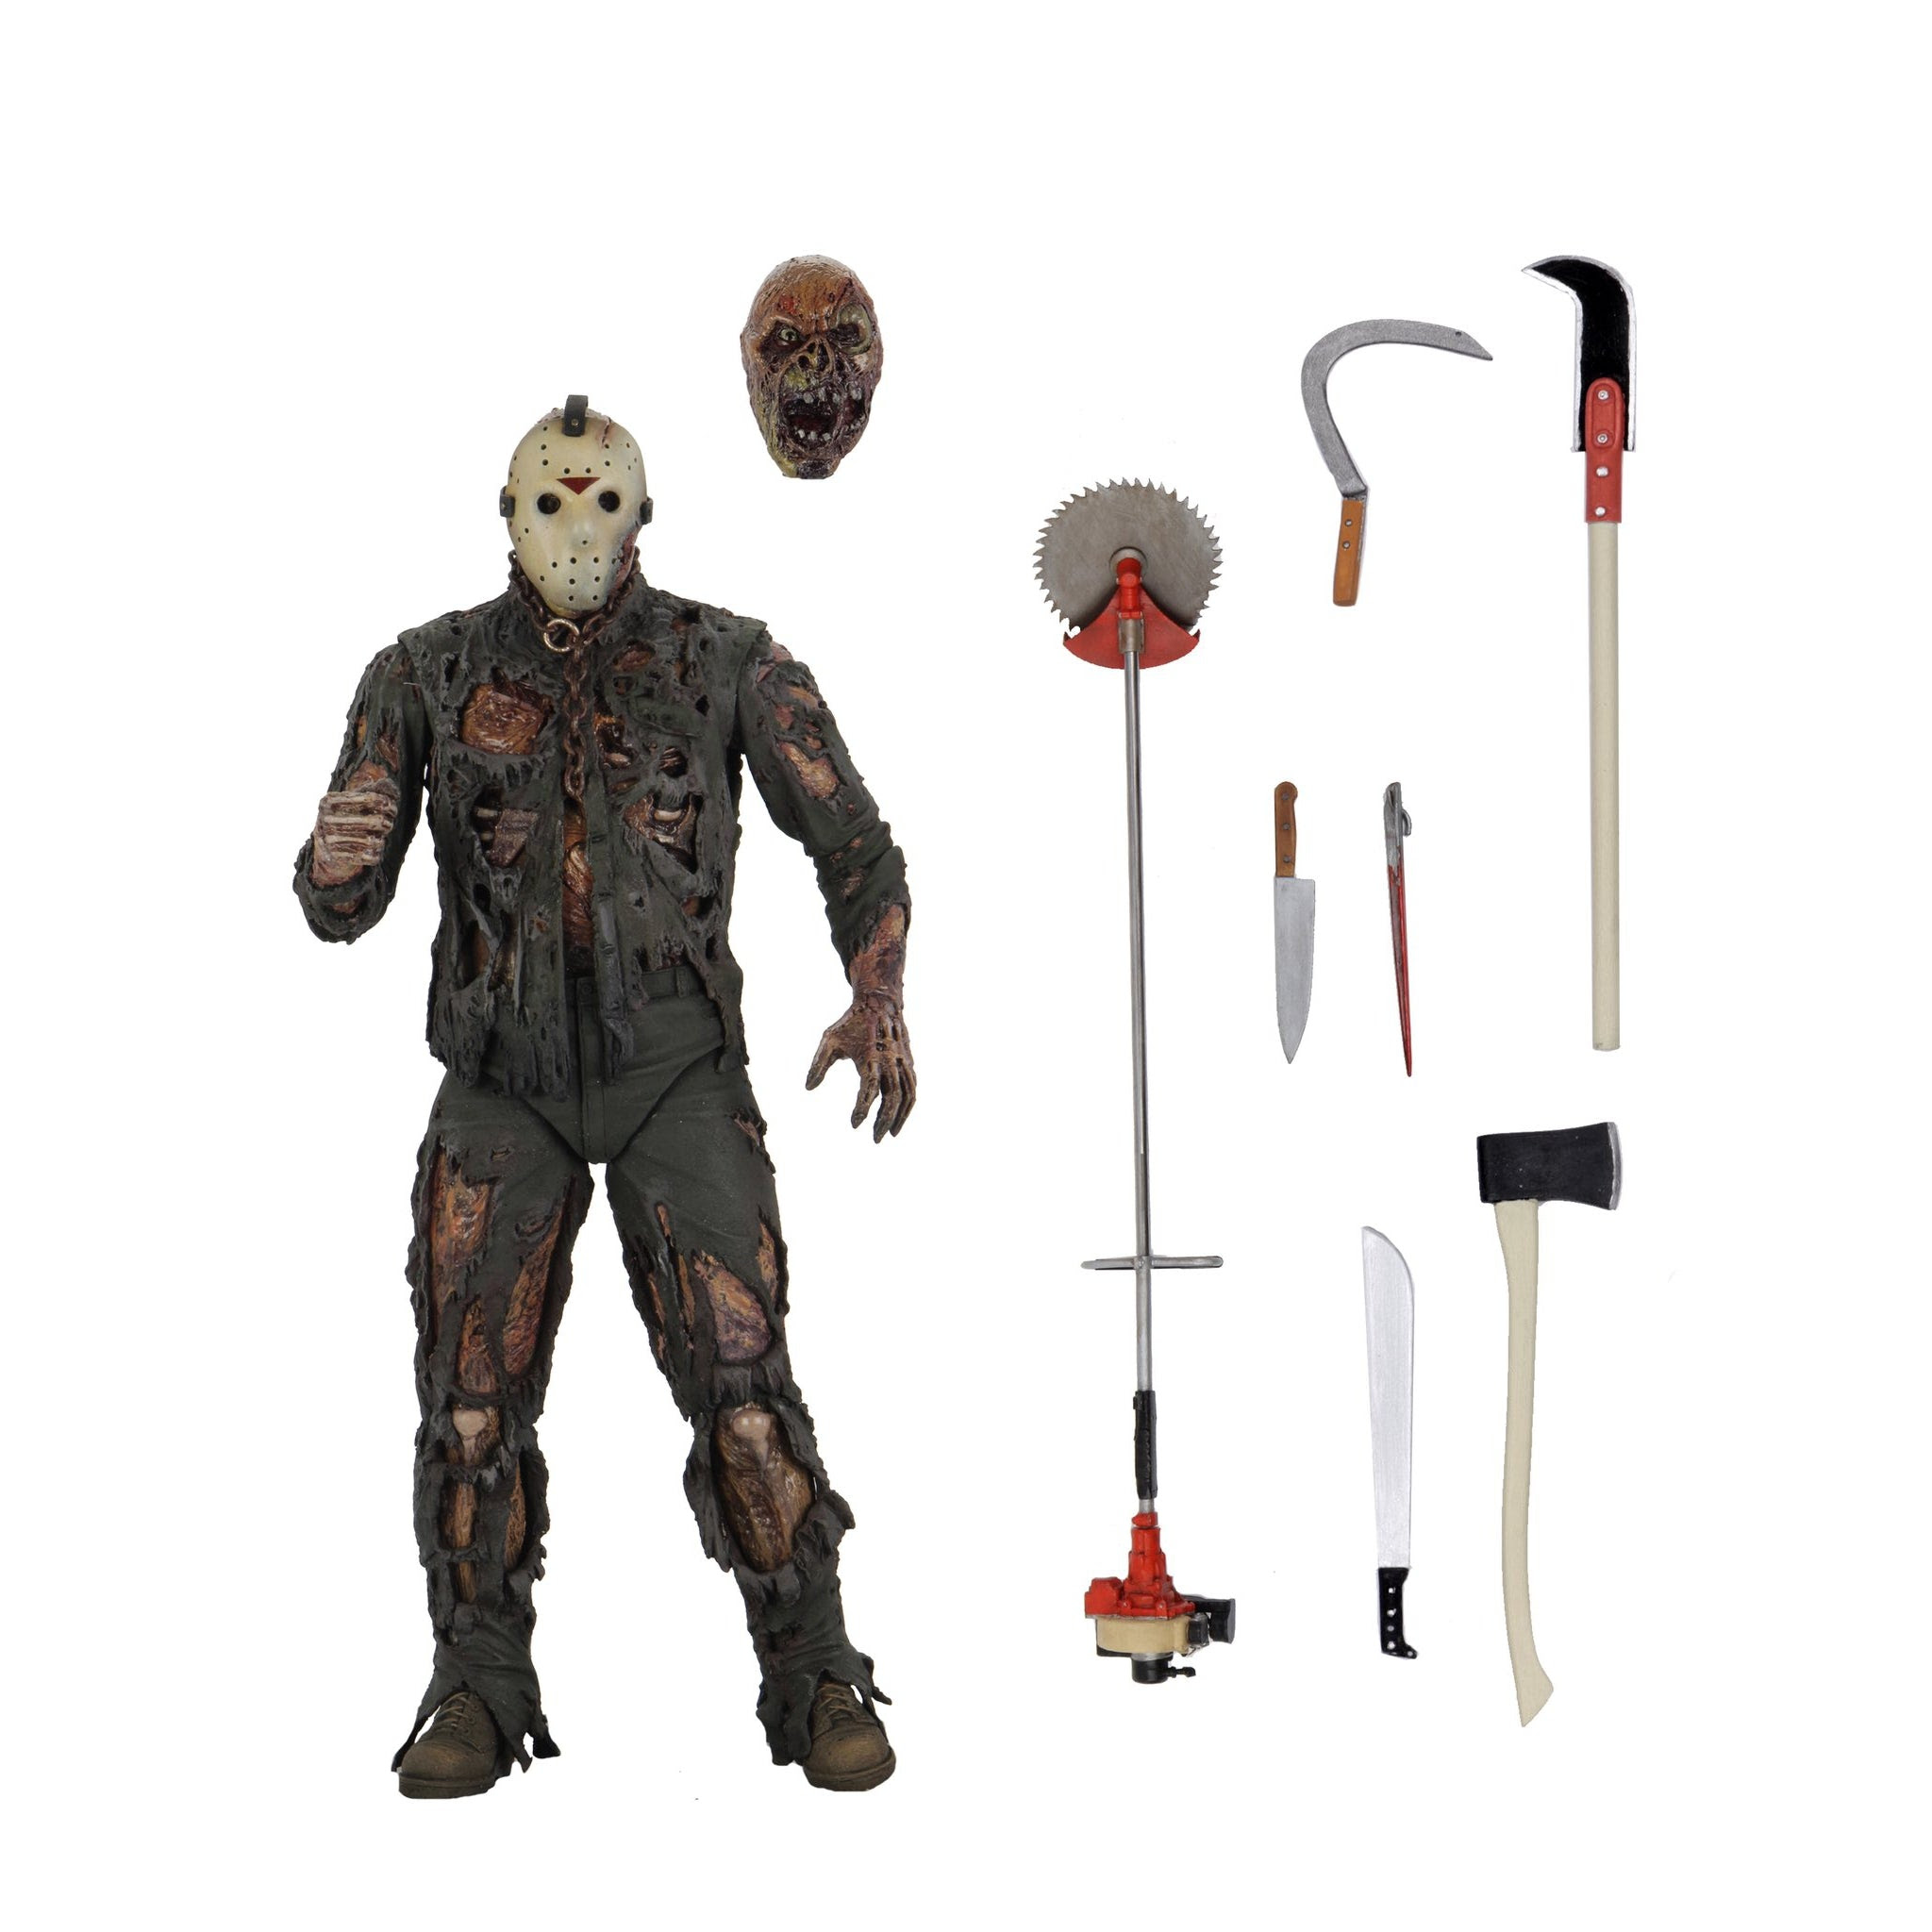 Image of Friday the 13th Part VII Ultimate Jason (The New Blood) Figure - DECEMBER 2020